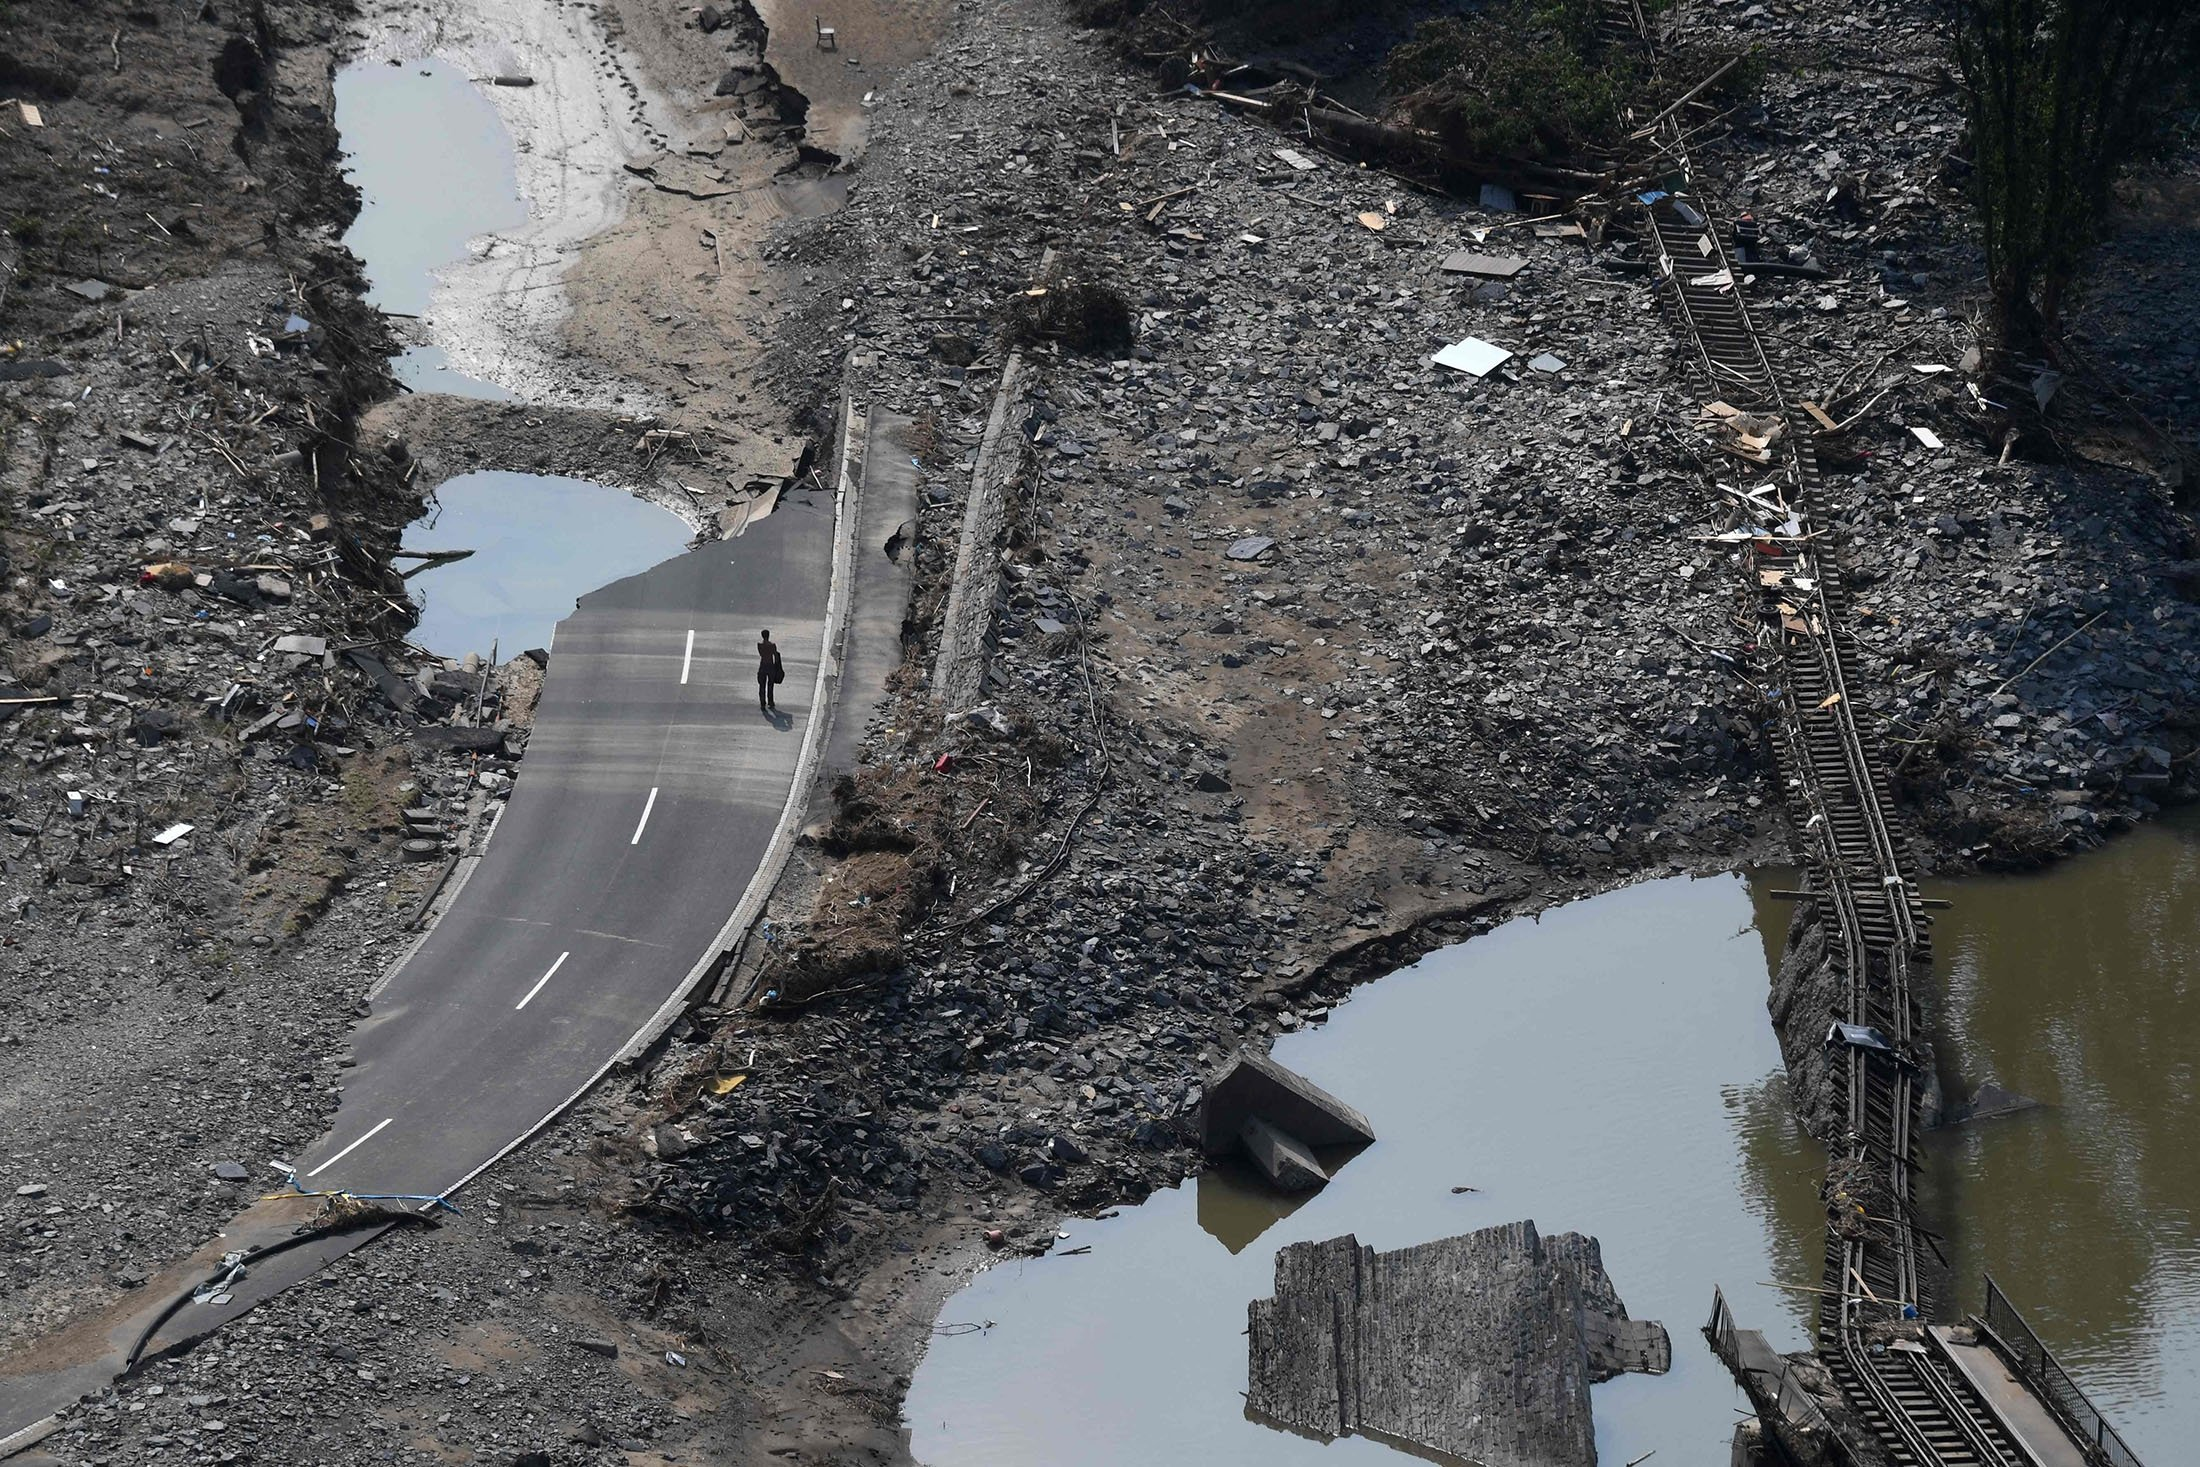 A man walks along the destroyed B267 federal highway, along a destroyed railway track, in the district of Ahrweiler, days after heavy floods caused major damage in the region, Germany, July 23, 2021. (AFP Photo)